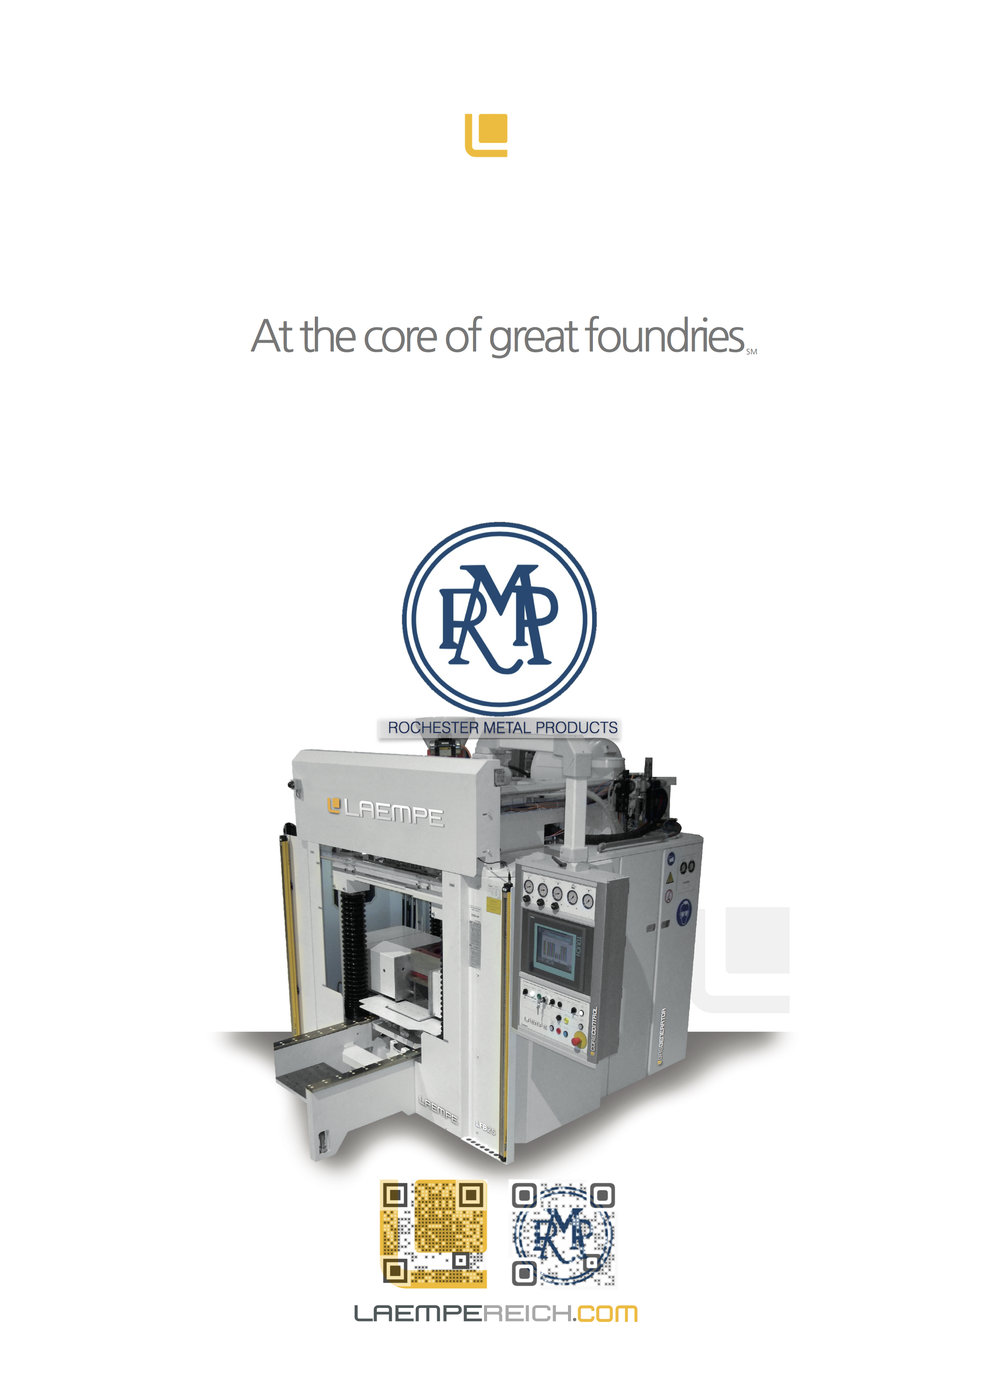 Rochester - At the Core of Great Foundries.jpg